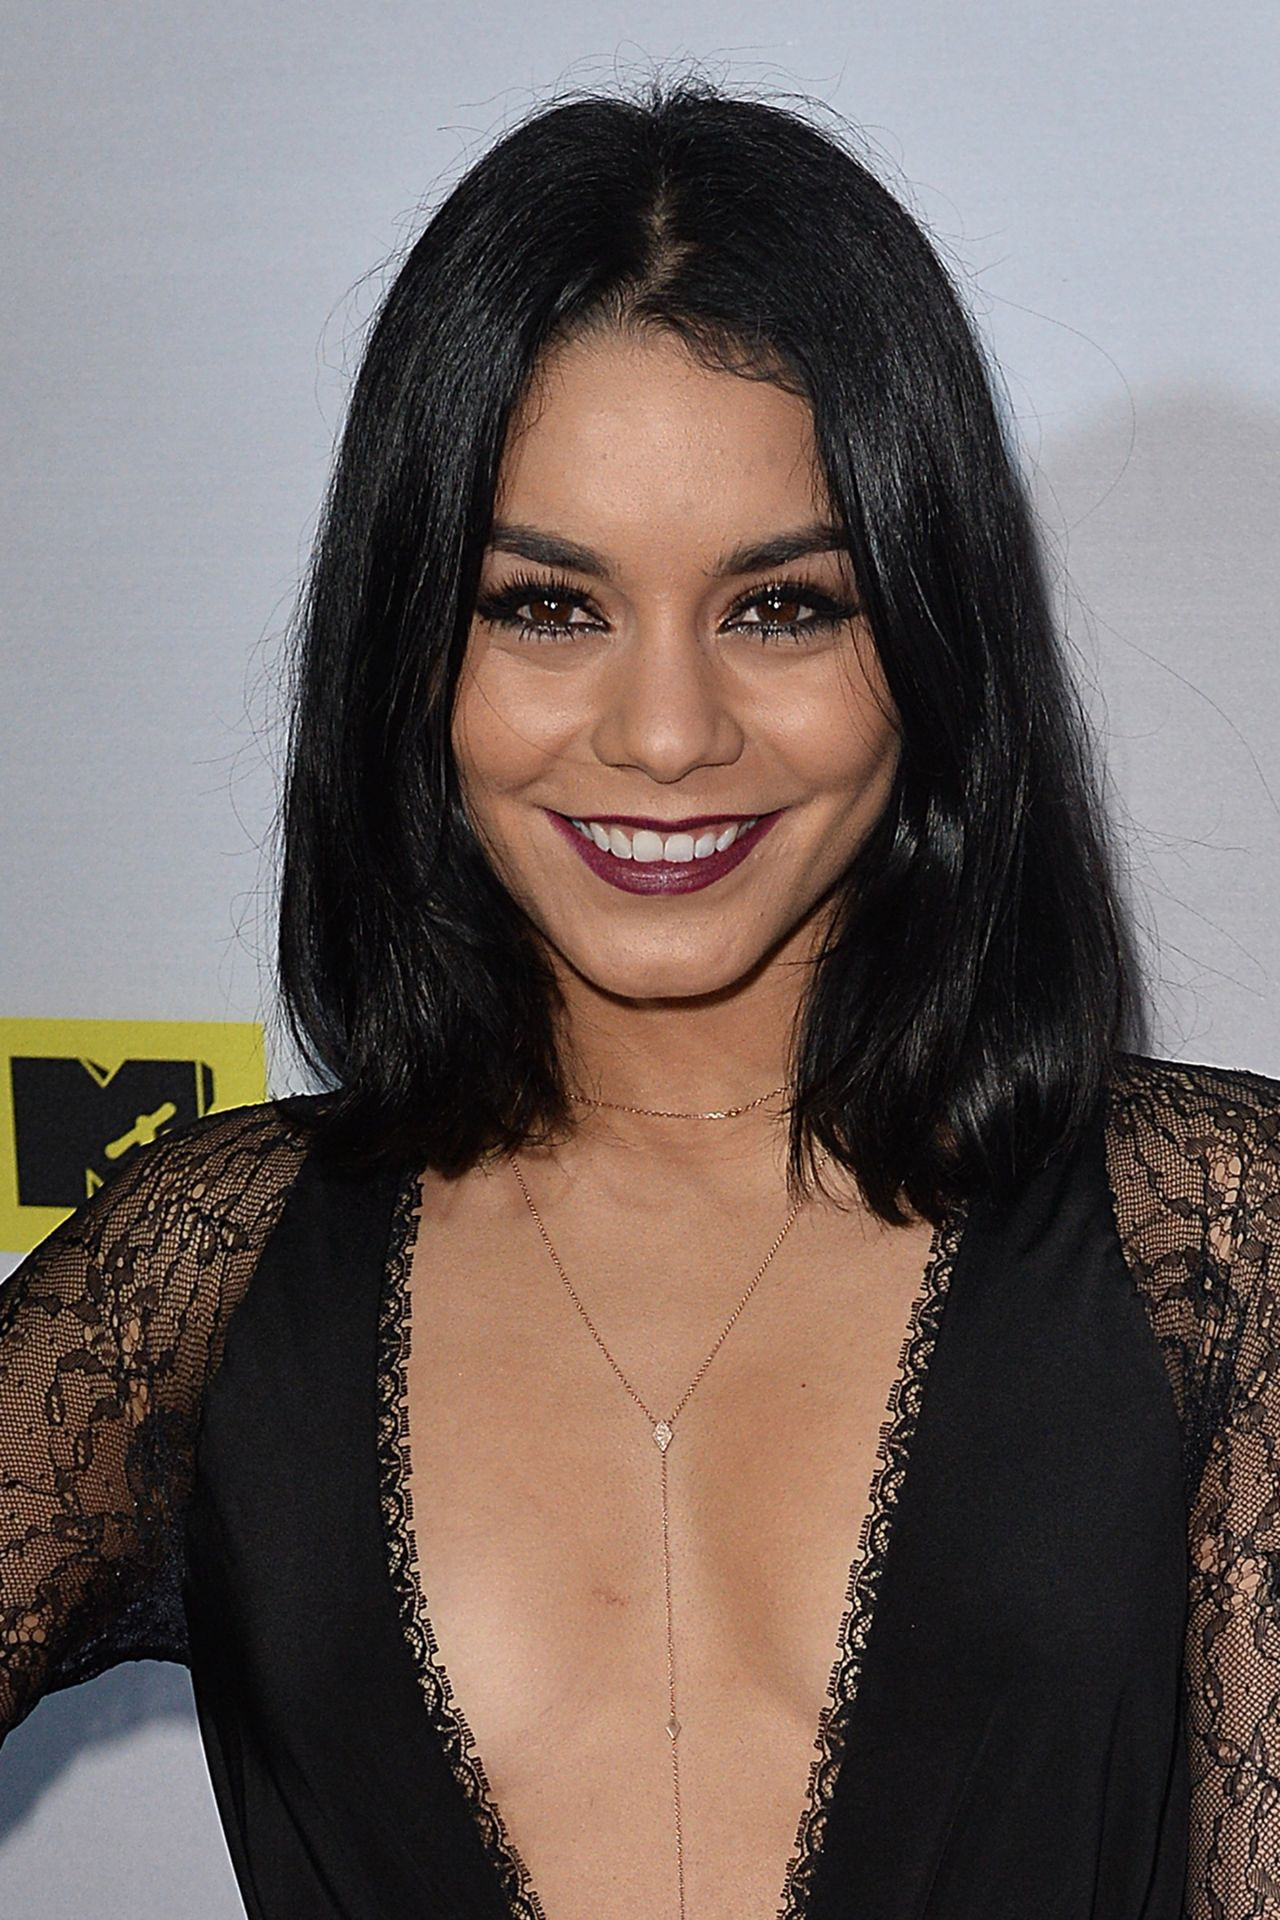 Vanessa Hudgens - 'The Shannara Chronicles' Premiere Party ... Vanessa Hudgens